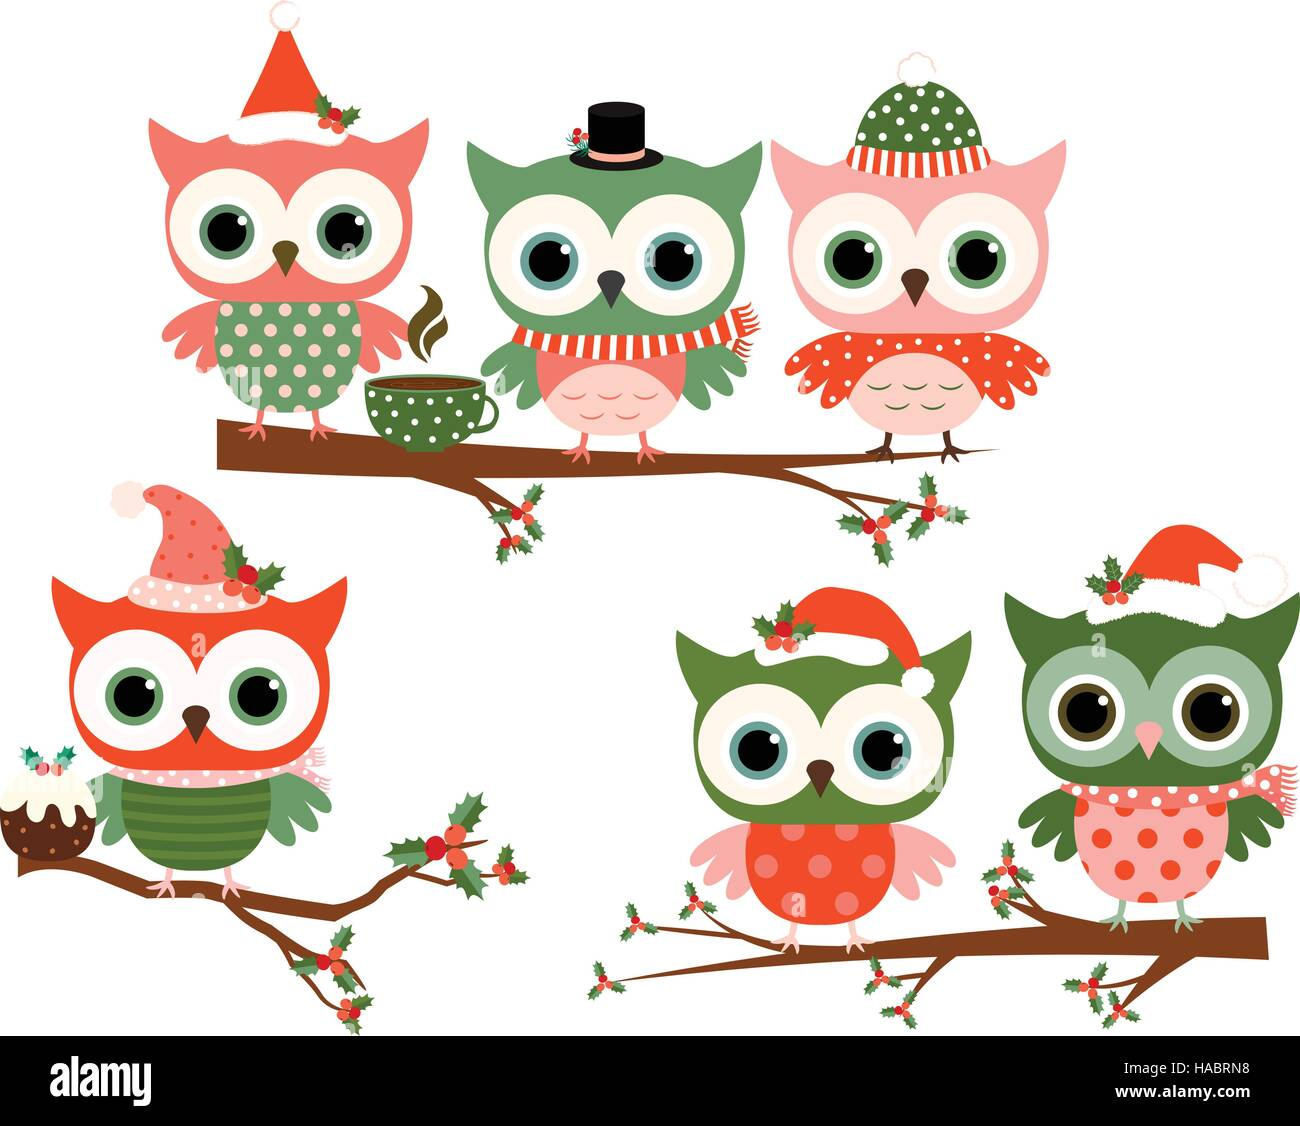 Cute Christmas owl characters on tree branches in green and red ...